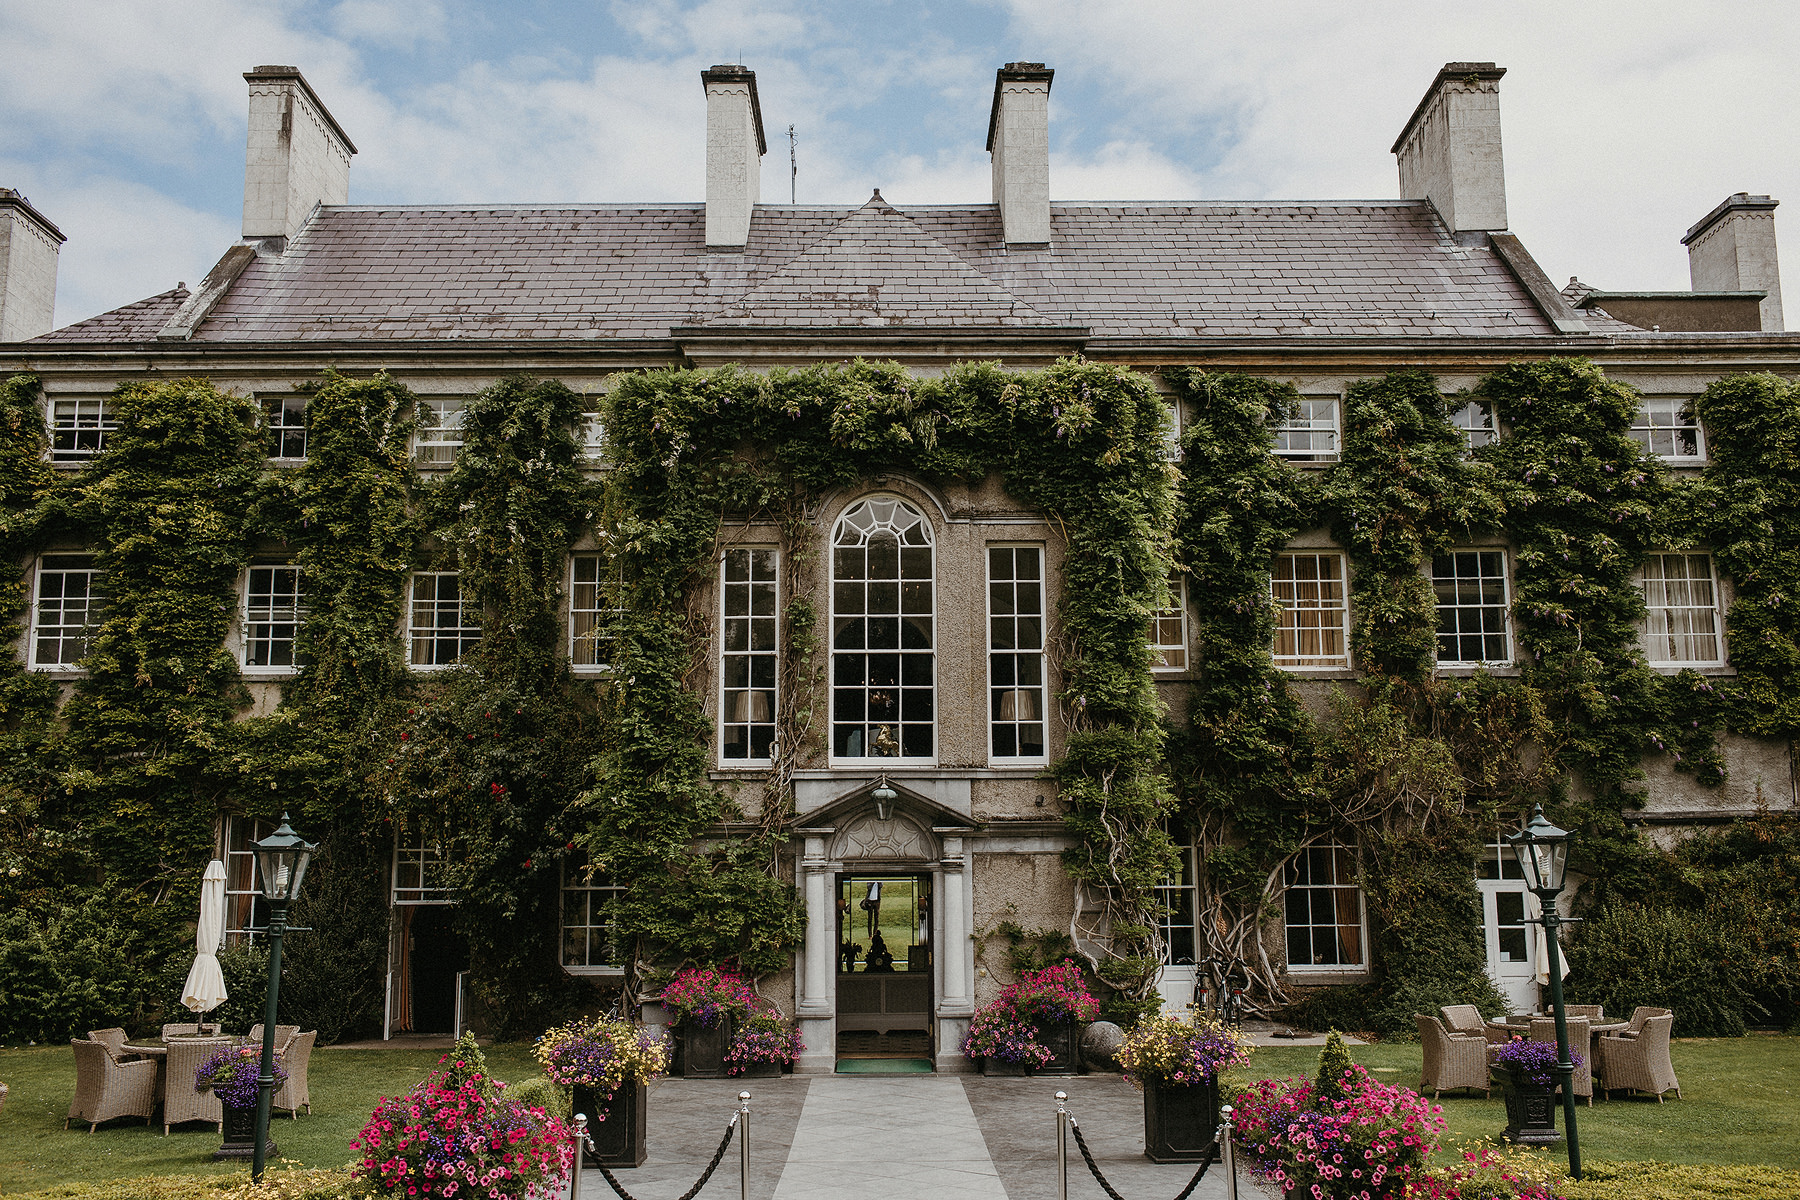 Mount juliet estate at summer destination elopement wedding in ireland